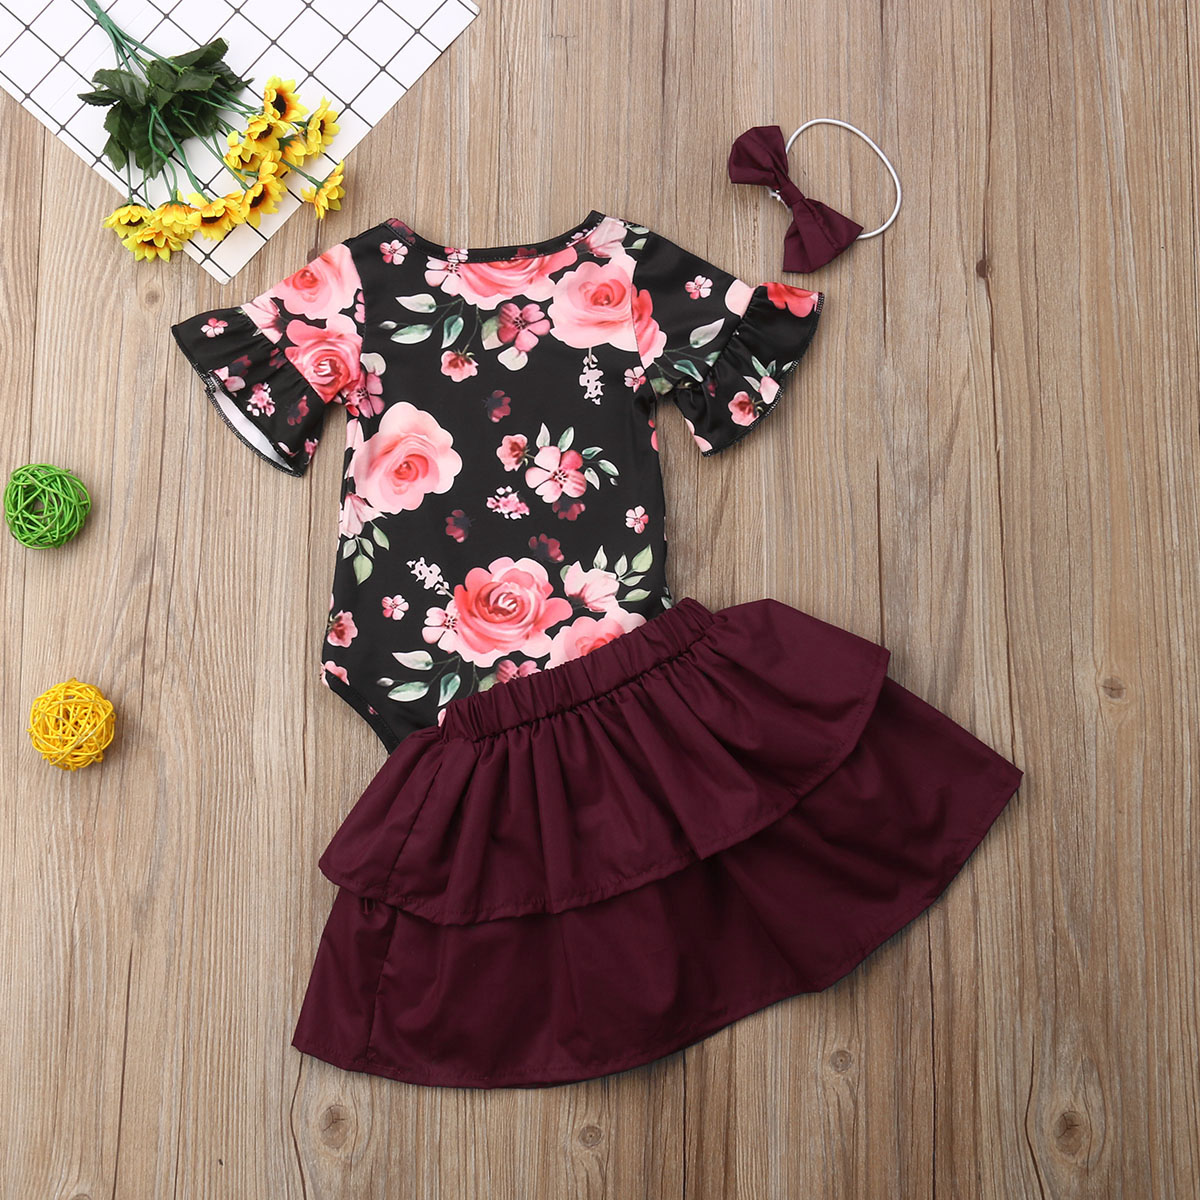 2545c026a0e1 Details about Princess Baby Girls Summer 3PCS Clothes Floral Romper Dress  Skirts Outfits 0-18M